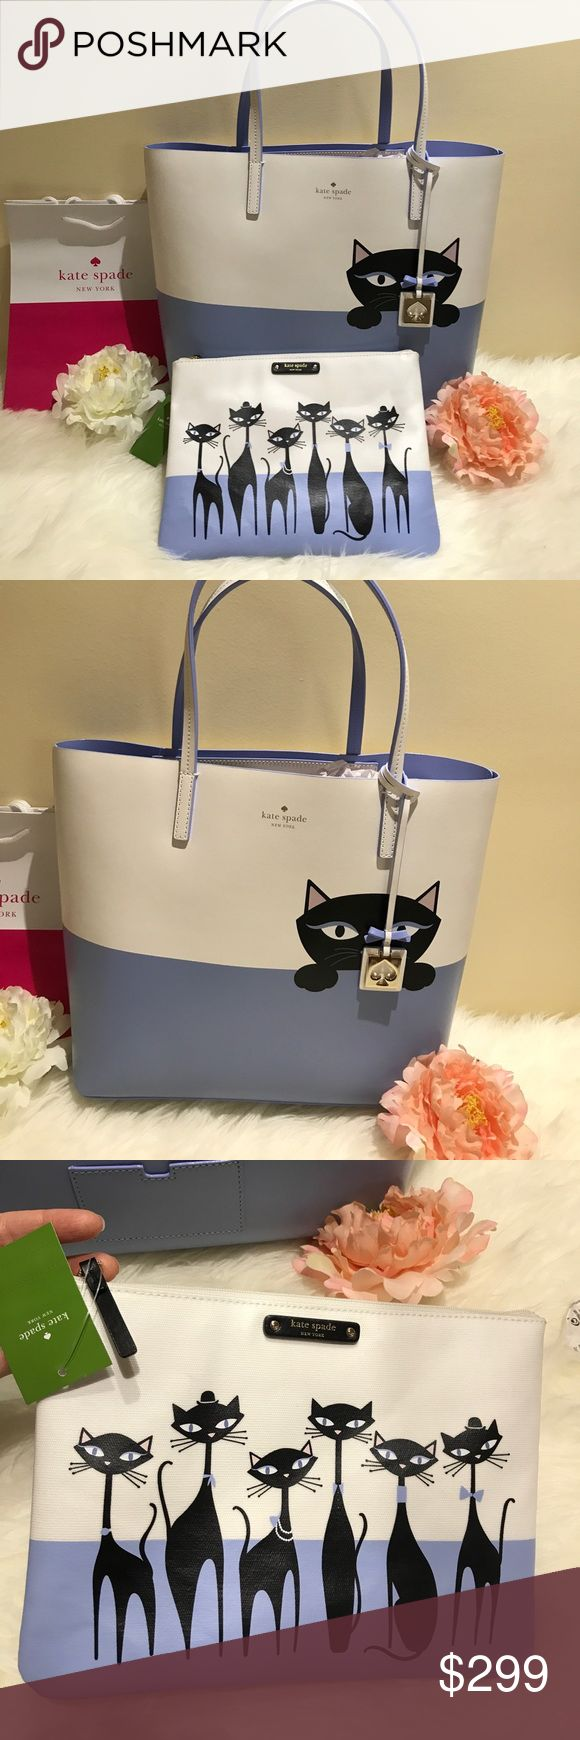 Kate Spade ♠️ cat  large tote, pouch bundle nwt Beautiful large tote with gold plated hardware and matching zippered pouch which can be used as a make up case, stunning duo that will make any witch thrilled for Halloween! Boo! ❤️❤️ kate spade Bags Totes